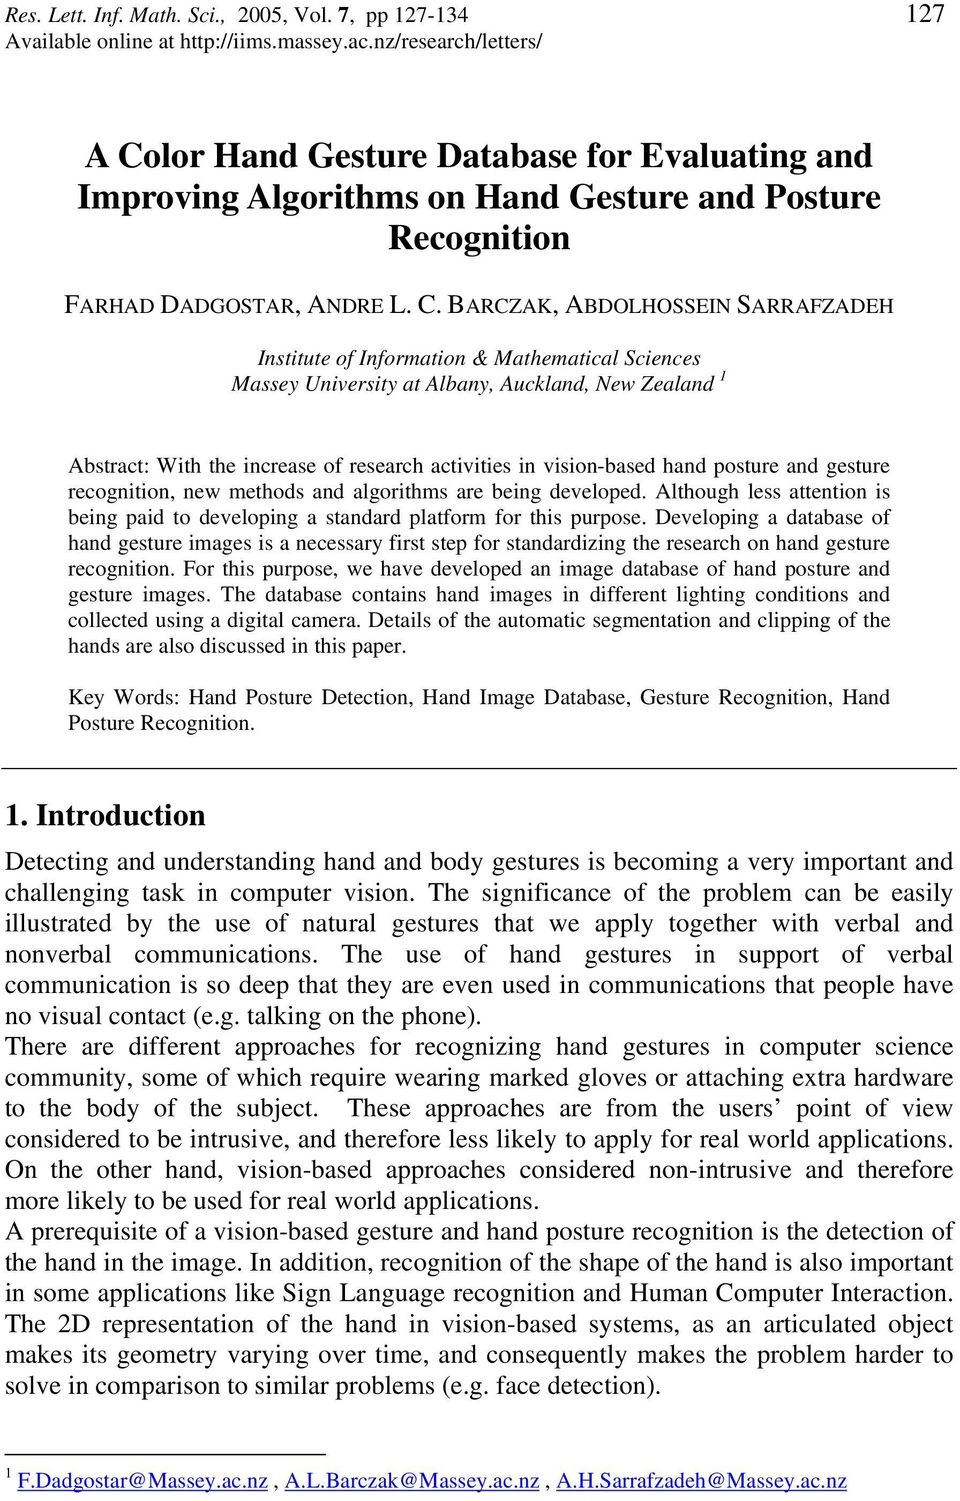 lor Hand Gesture Database for Evaluating and Improving Algorithms on Hand Gesture and Posture Recognition FARHAD DADGOSTAR, ANDRE L. C.